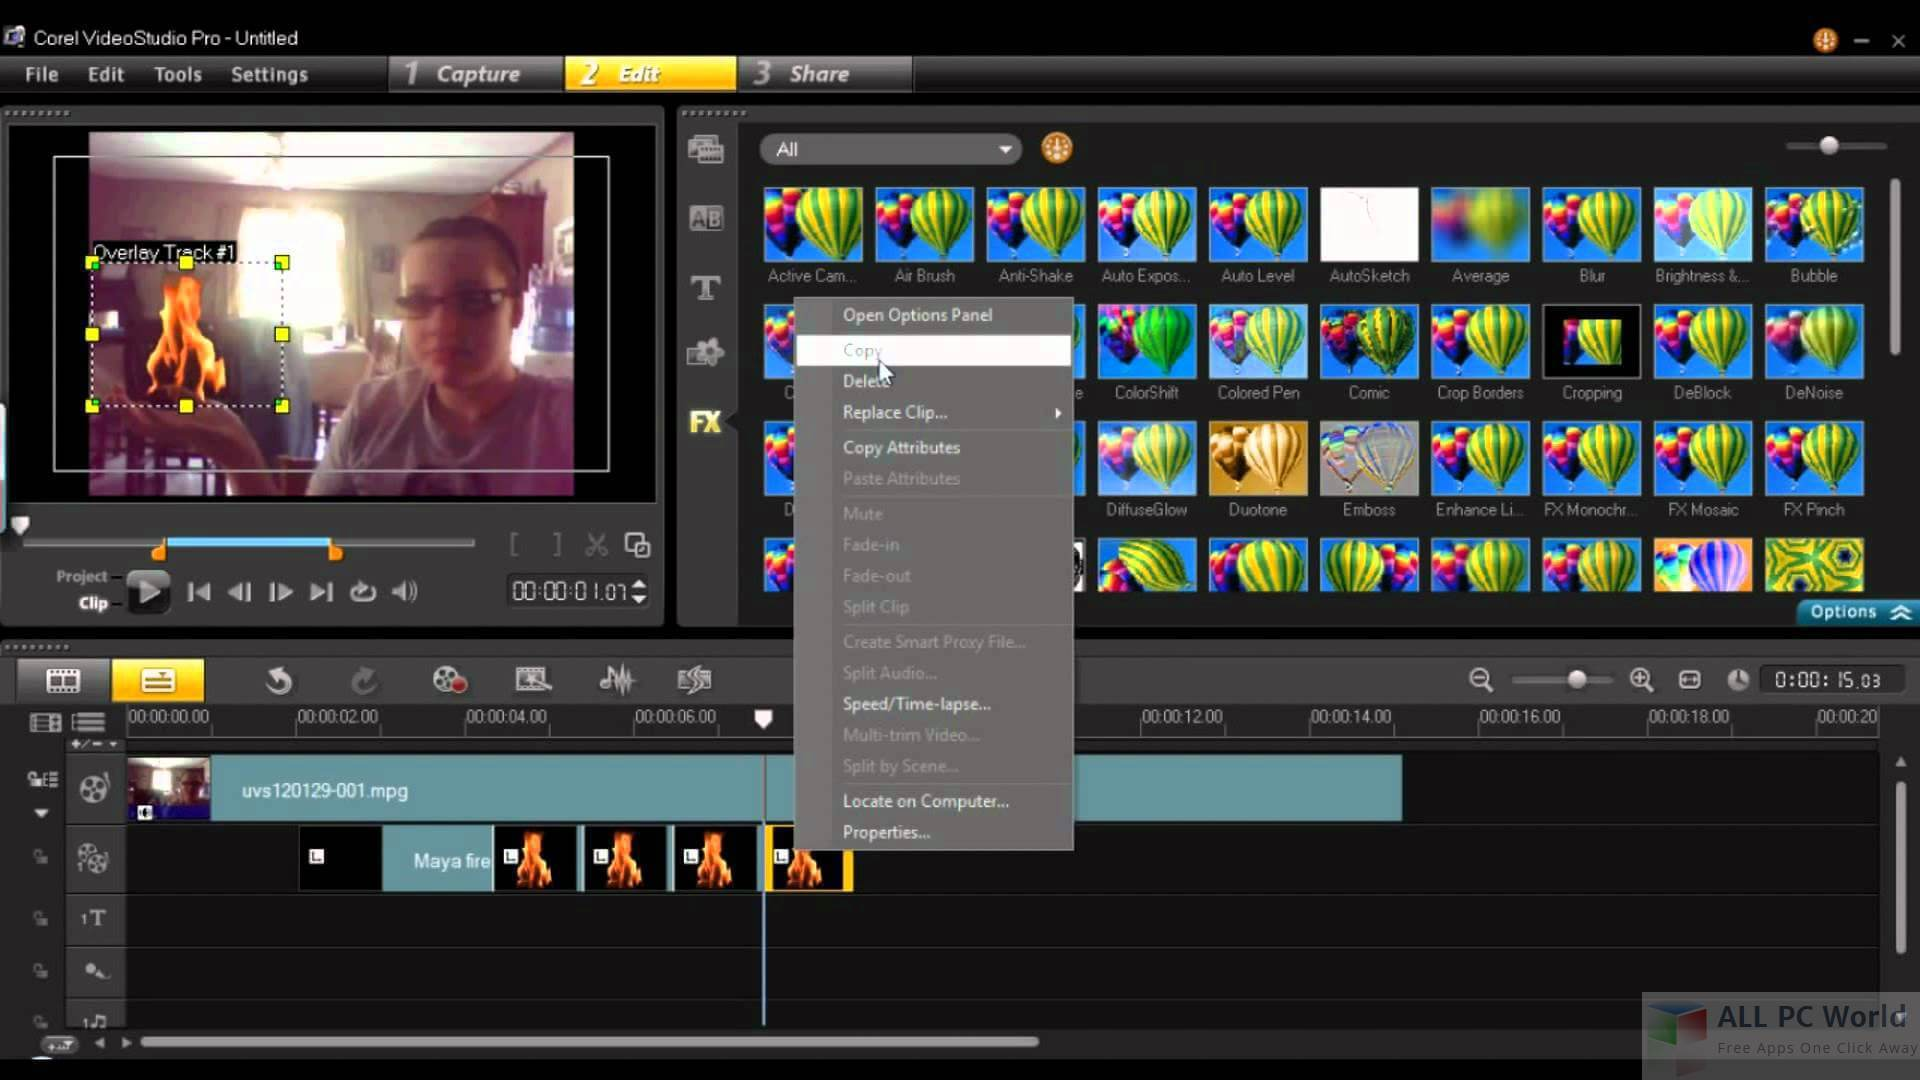 Gracious Corel Videostudio Pro Review All Pc World Corel Videostudio X9 Running Slow Corel Videostudio X9 No Sound dpreview Corel Videostudio X9